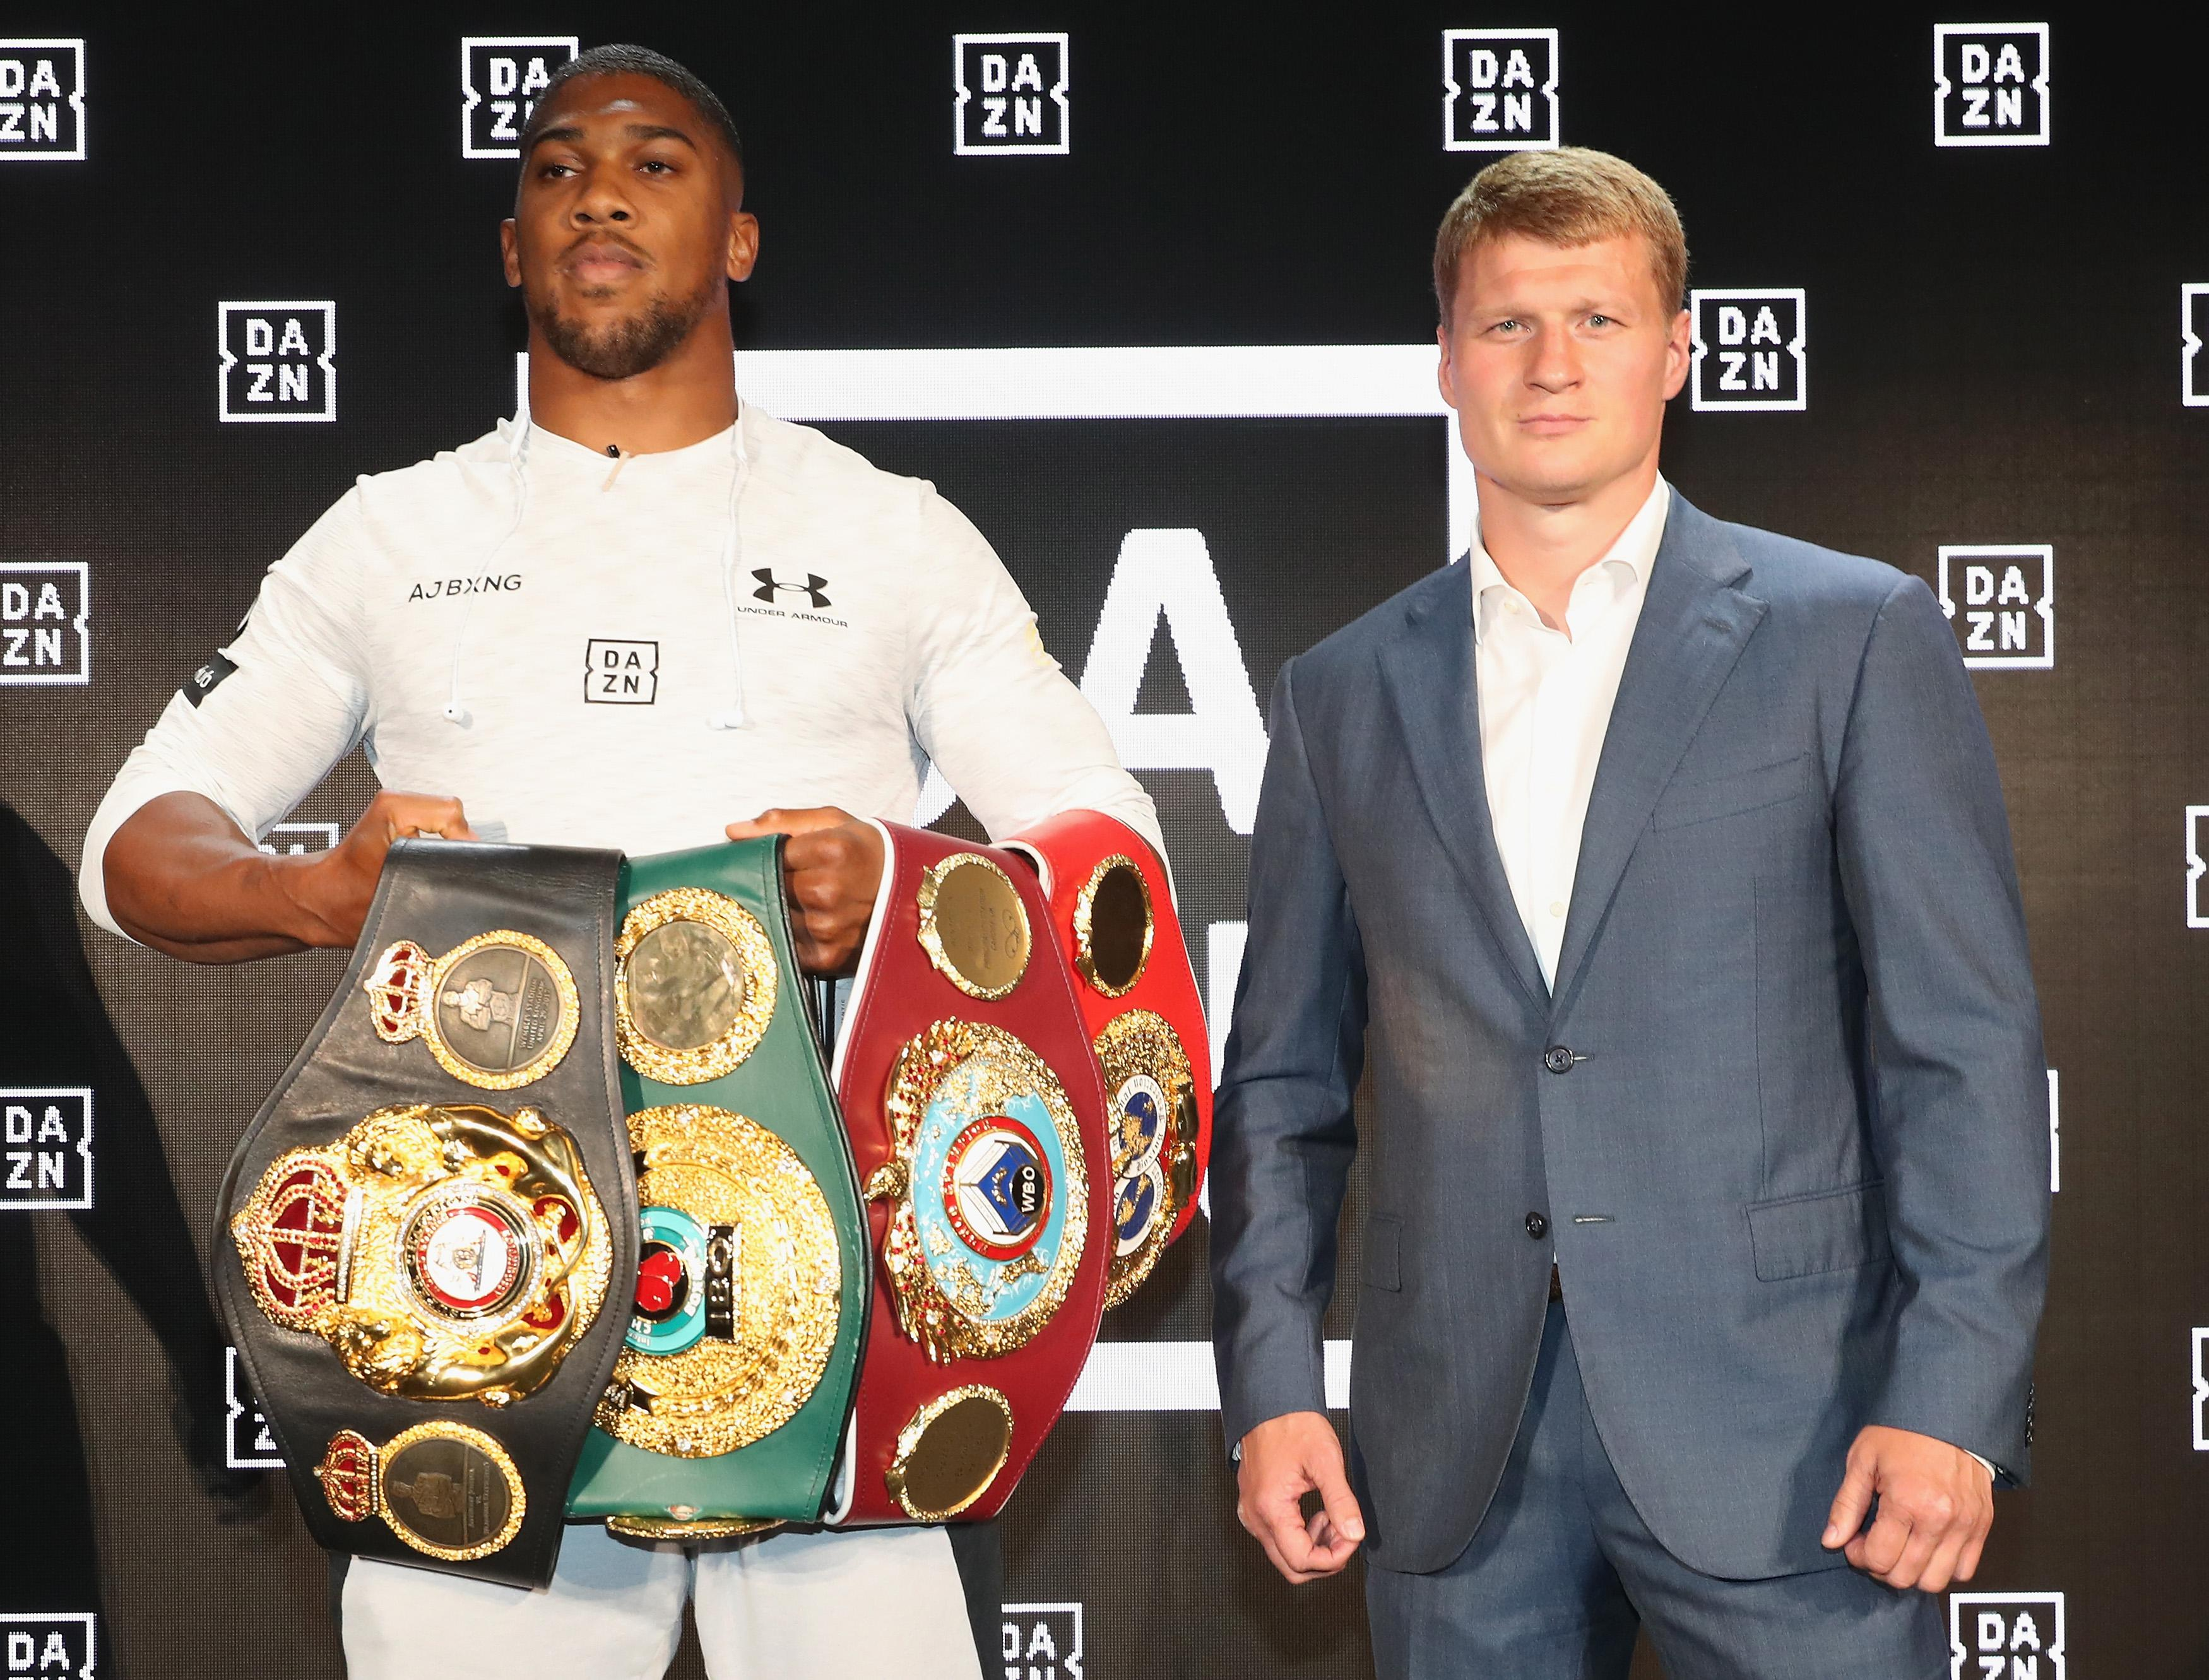 Joshua has so far failed to find an agreement with Deontay Wilder over w world heavyweight unification fight